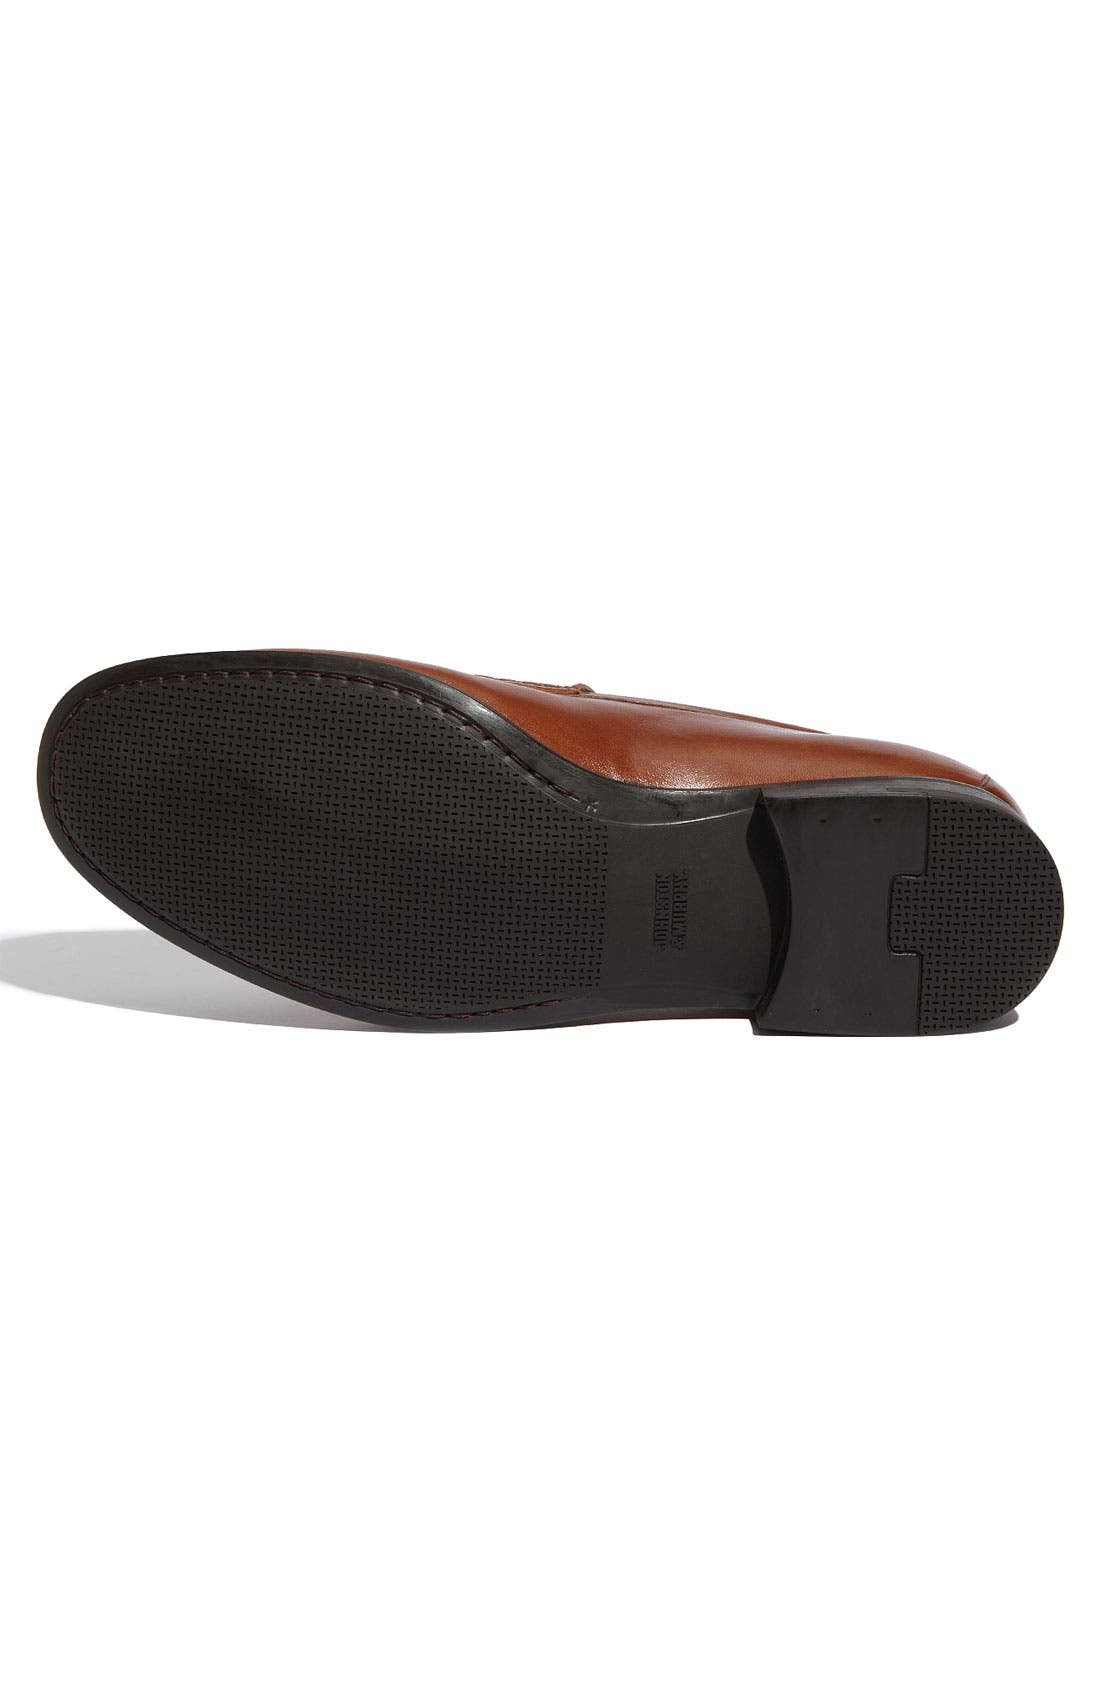 JOHNSTON & MURPHY,                             'Creswell' Venetian Slip-On,                             Alternate thumbnail 4, color,                             COGNAC